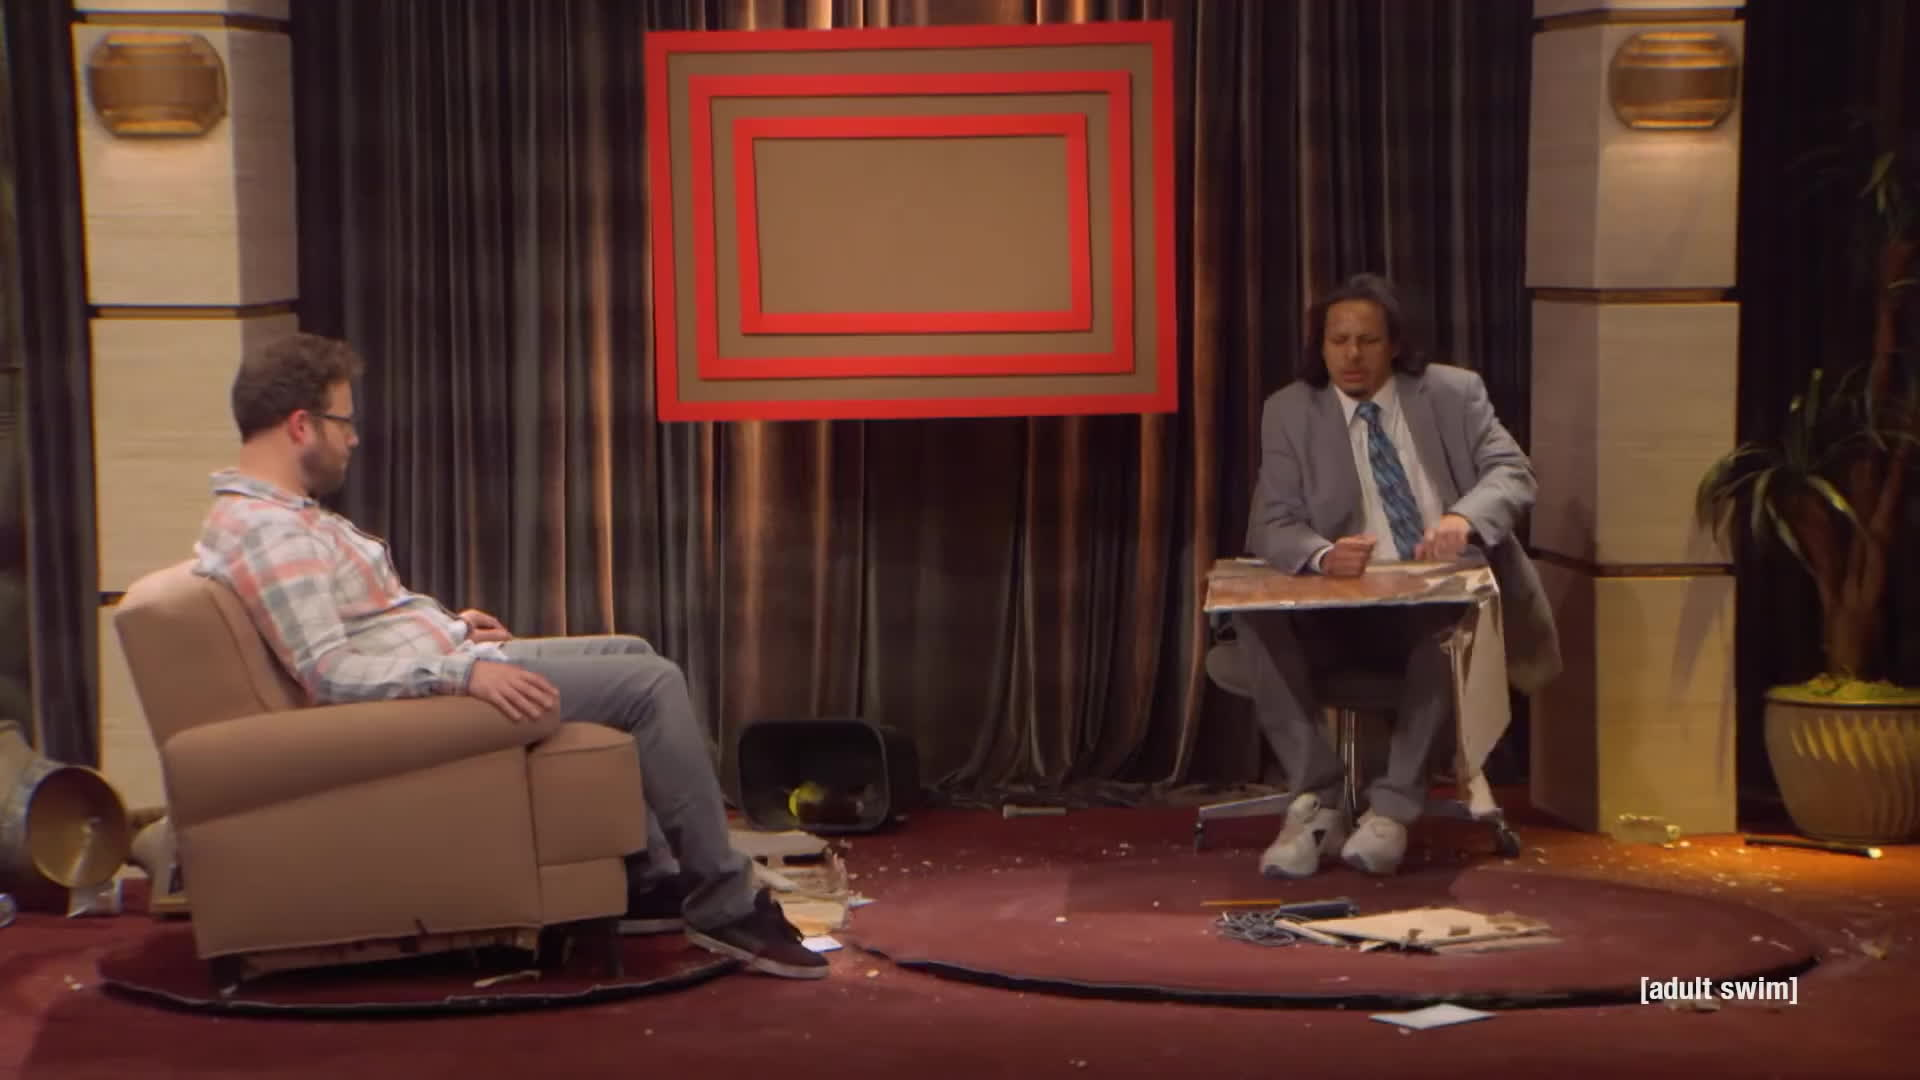 TheEricAndreShow, eric andre show, hannibal buress, Seth Rogen Part 2 | The Eric Andre Show | Adult Swim GIFs